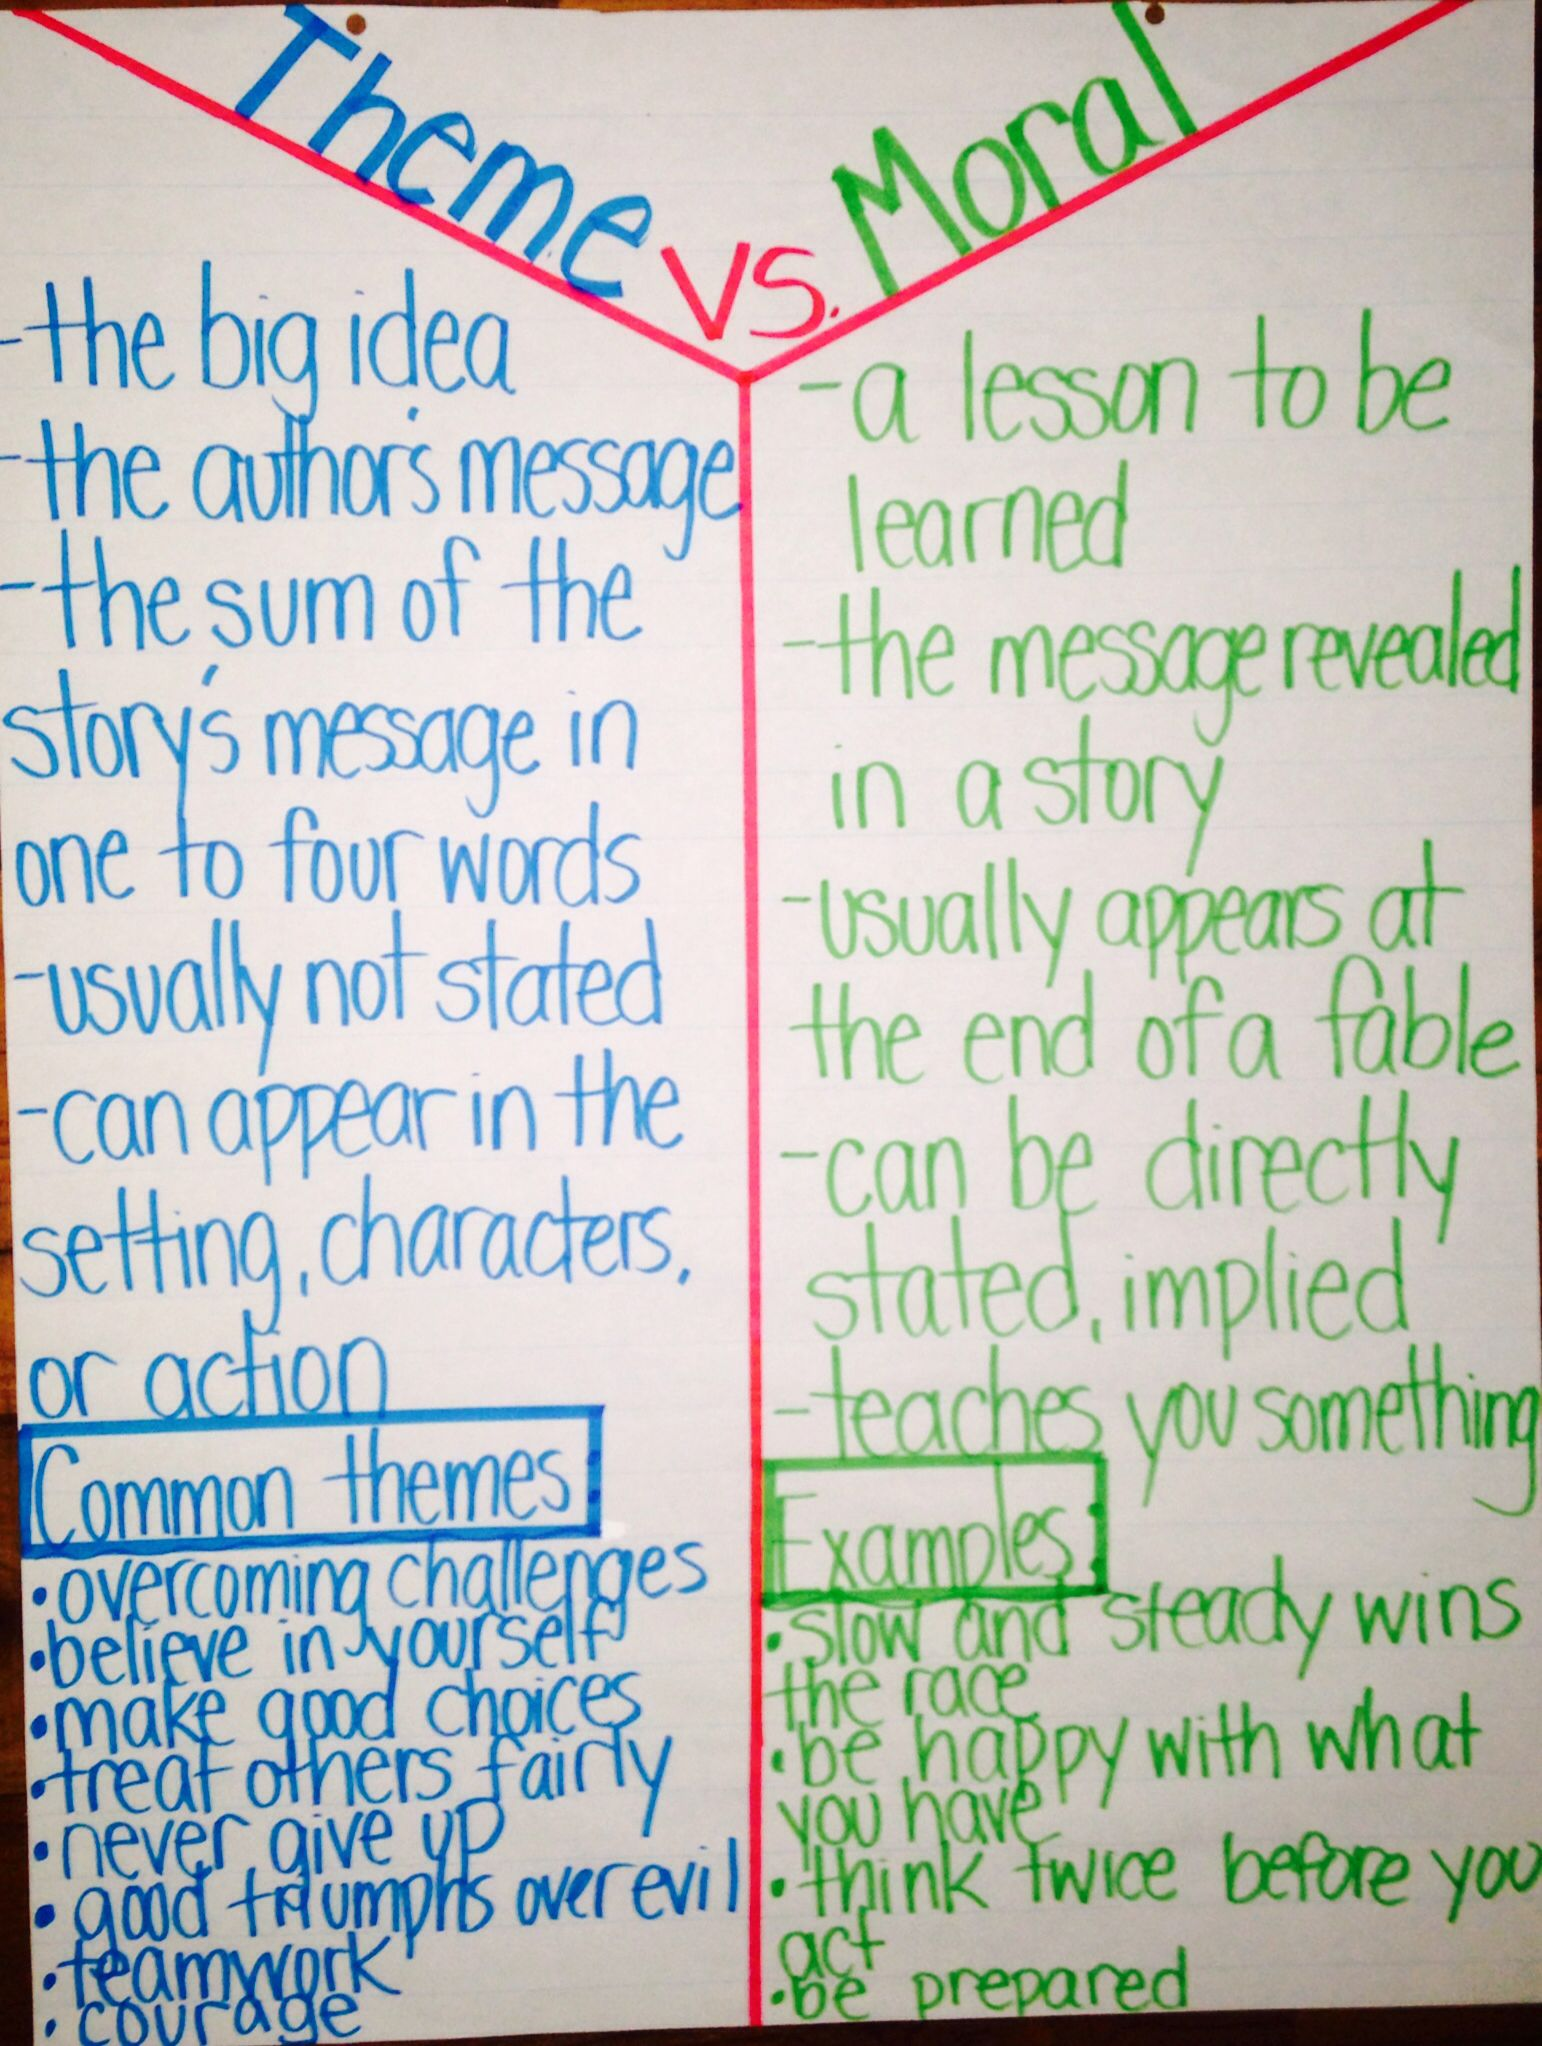 Theme Vs Moral Anchor Chart